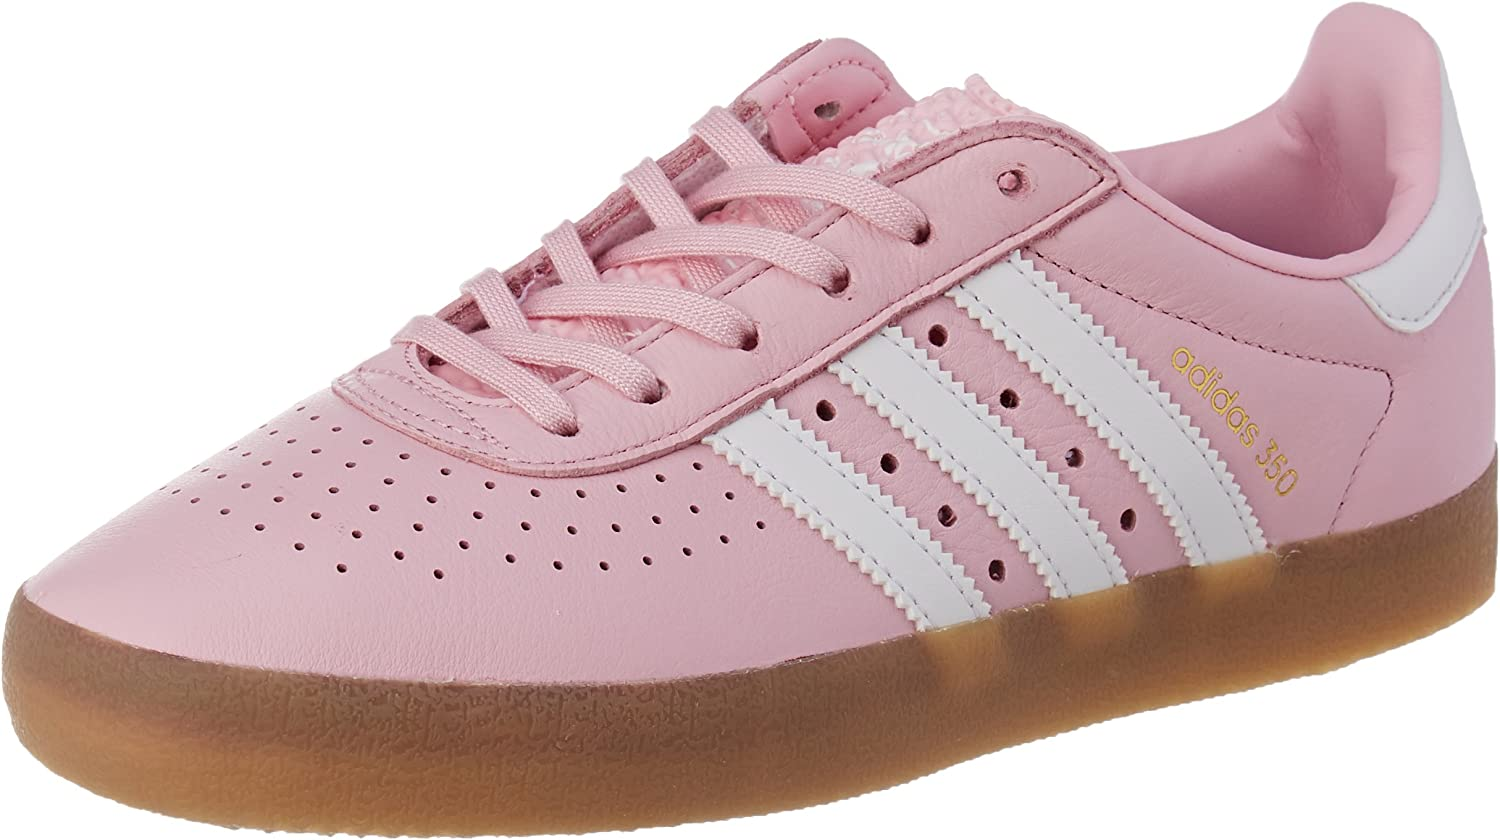 Adidas Originals Womens 350 Lace Up Trainers shoes - Pink